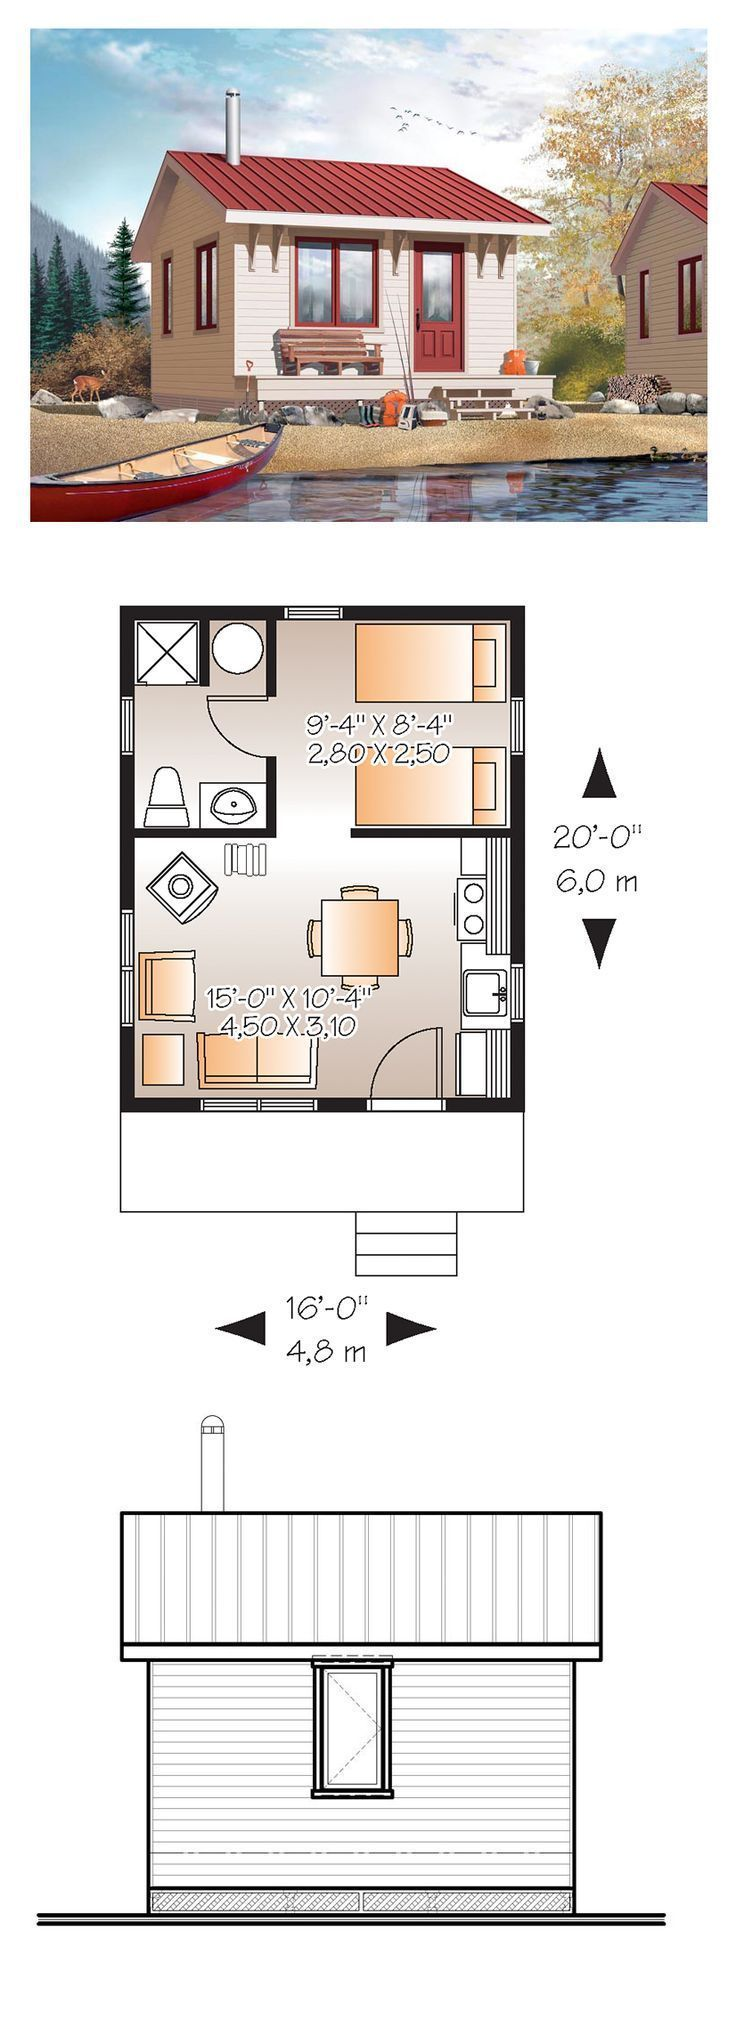 This tiny home has a total living area of 320 sq. ft., 1 bedroom and 1 bathroom, with plenty of space to bring your bestie along for a weekend getaway.